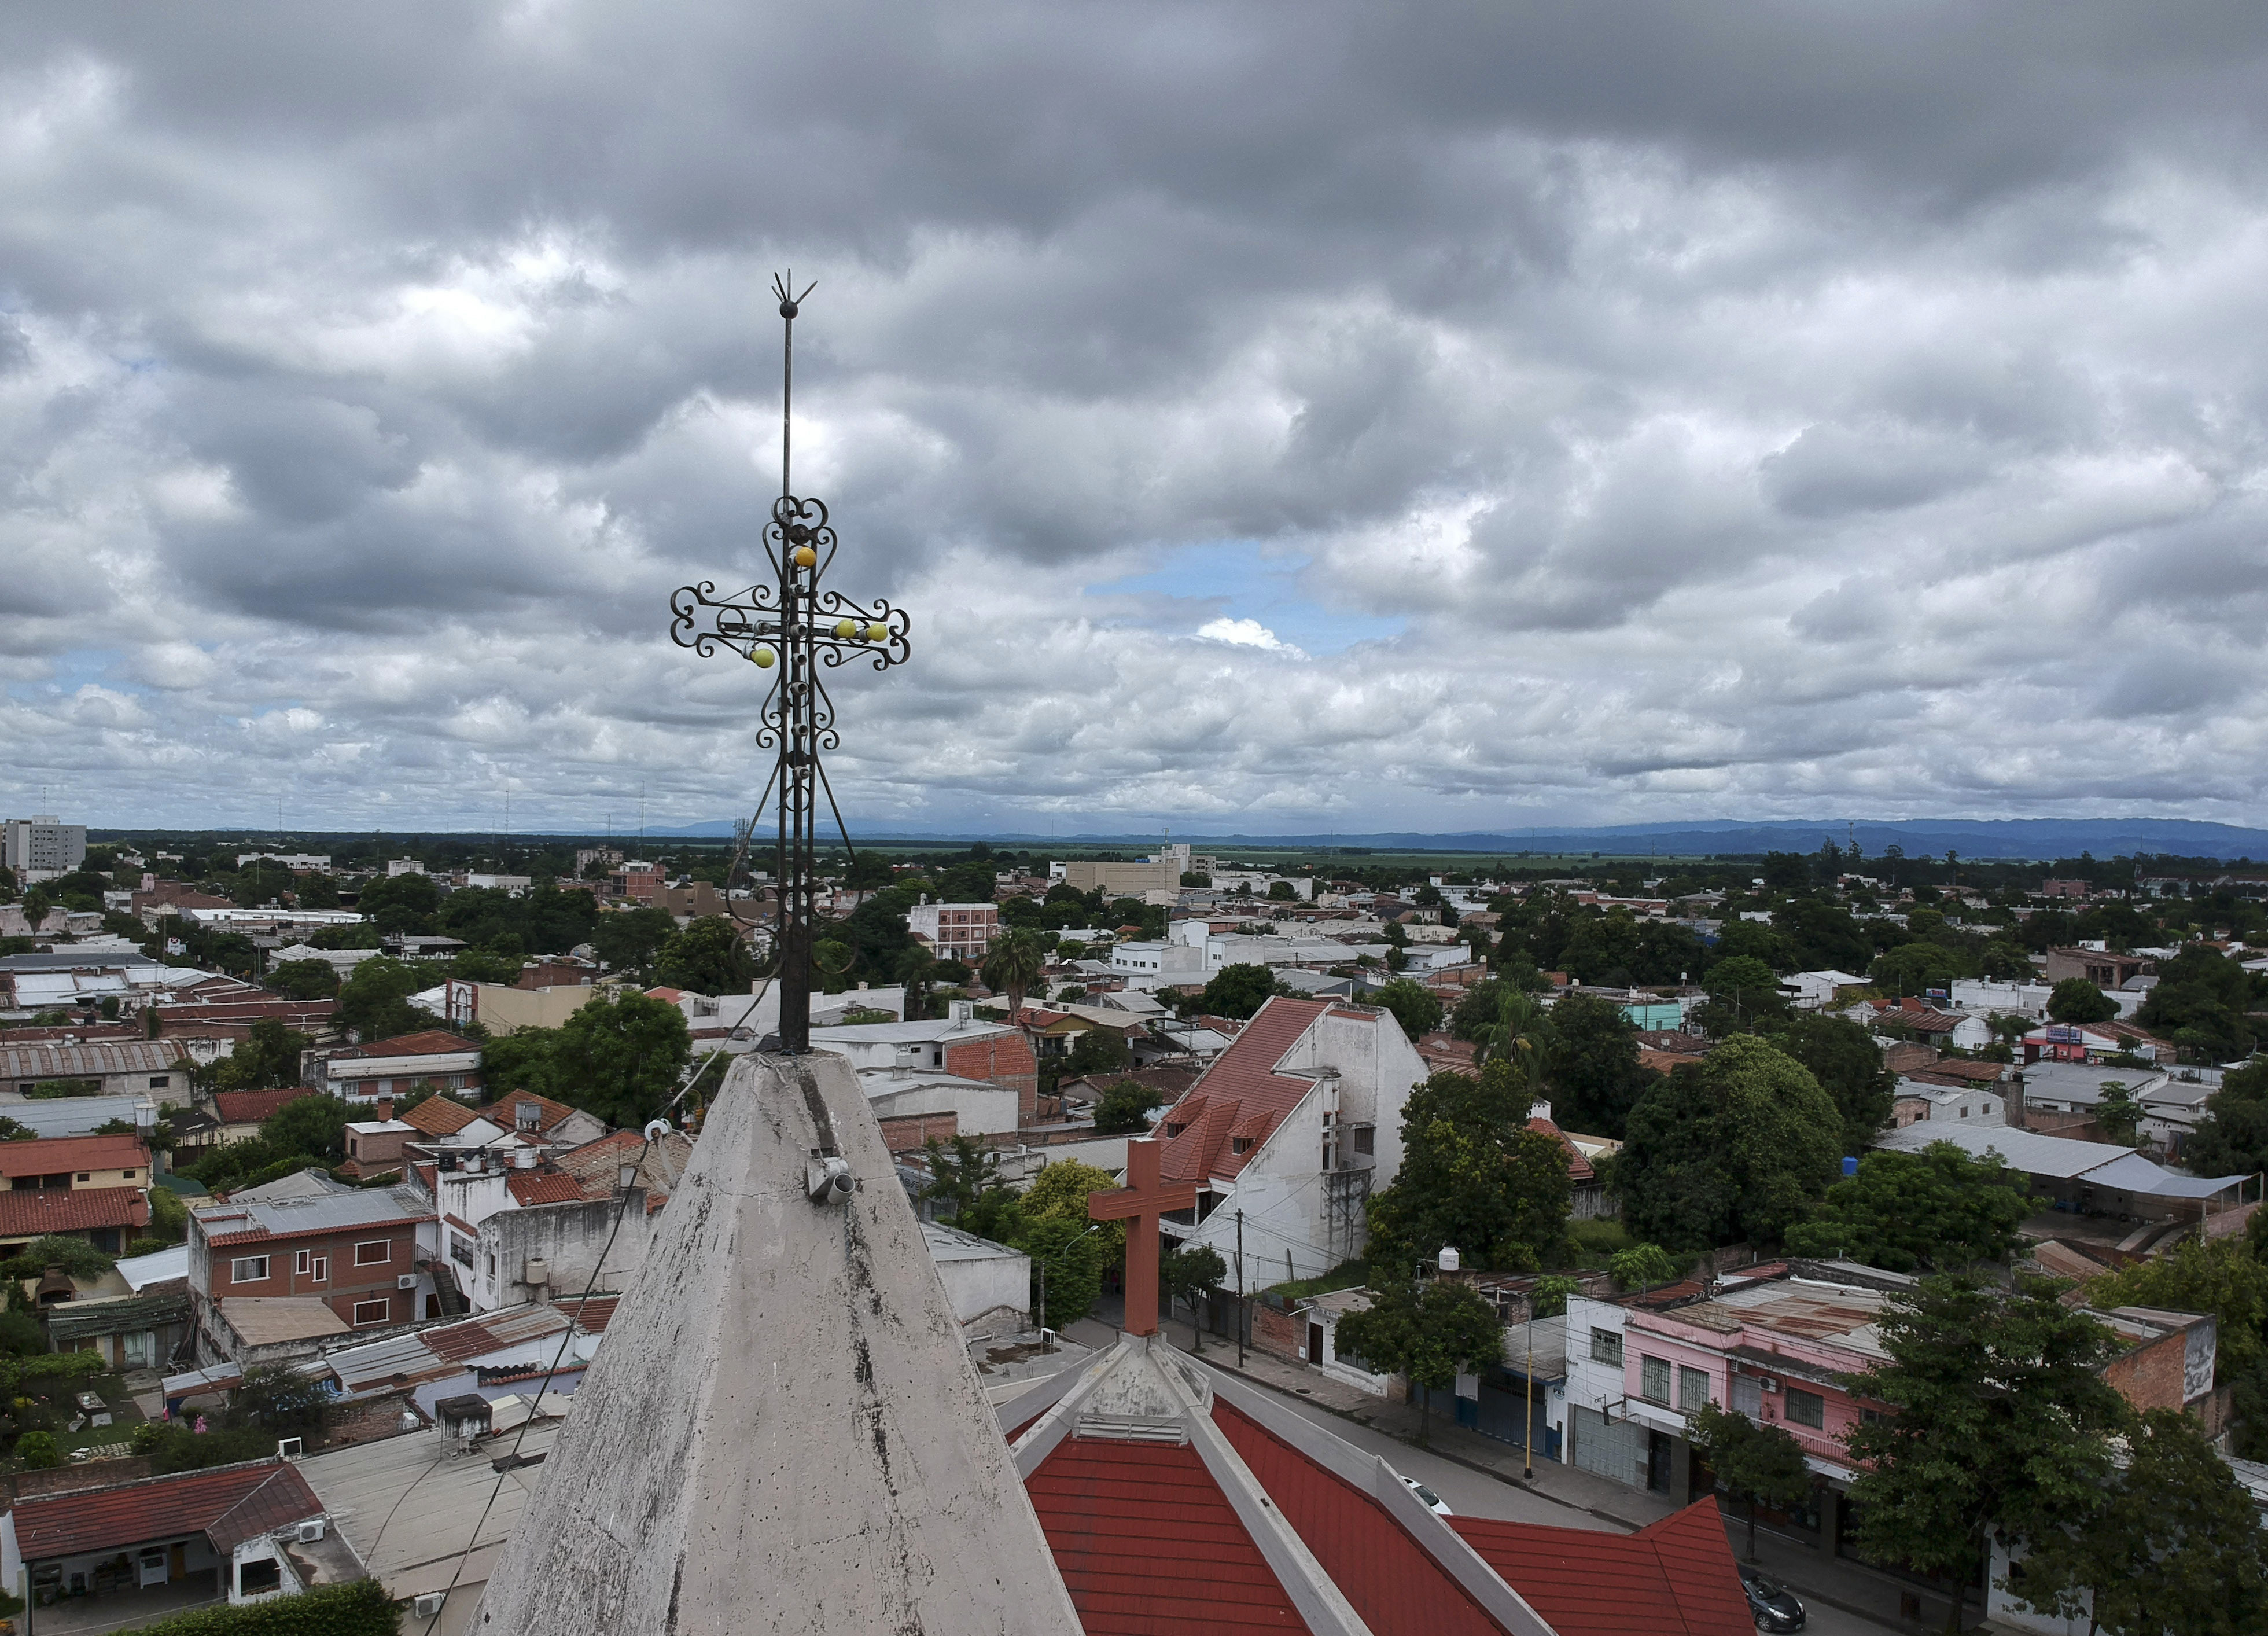 FILE - This Jan. 16, 2019 photo shows Oran city, Argentina. Pope Francis' high-stakes sex abuse prevention summit is meant to call attention to the crisis as a global problem that requires a global response. Francis' home country is beginning to see an eruption of the scandal, with some cases even implicating the pontiff himself. (AP Photo/Natacha Pisarenko, file)